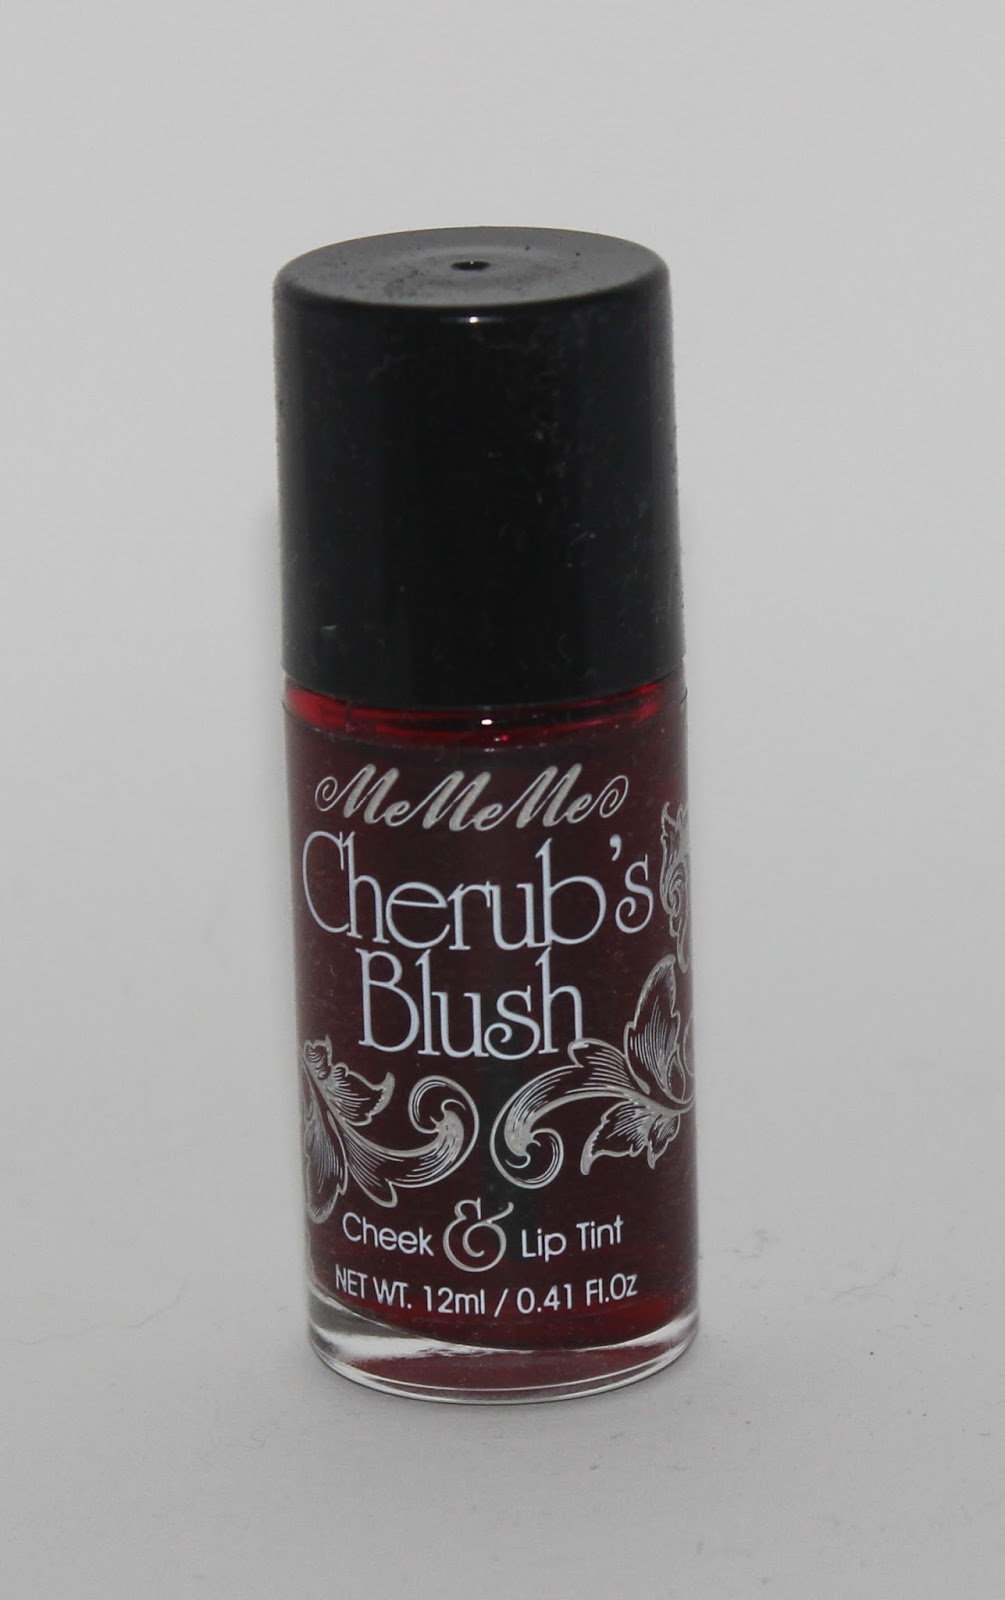 MeMeMe - Cherub's Blush Cheek & Lip Tint